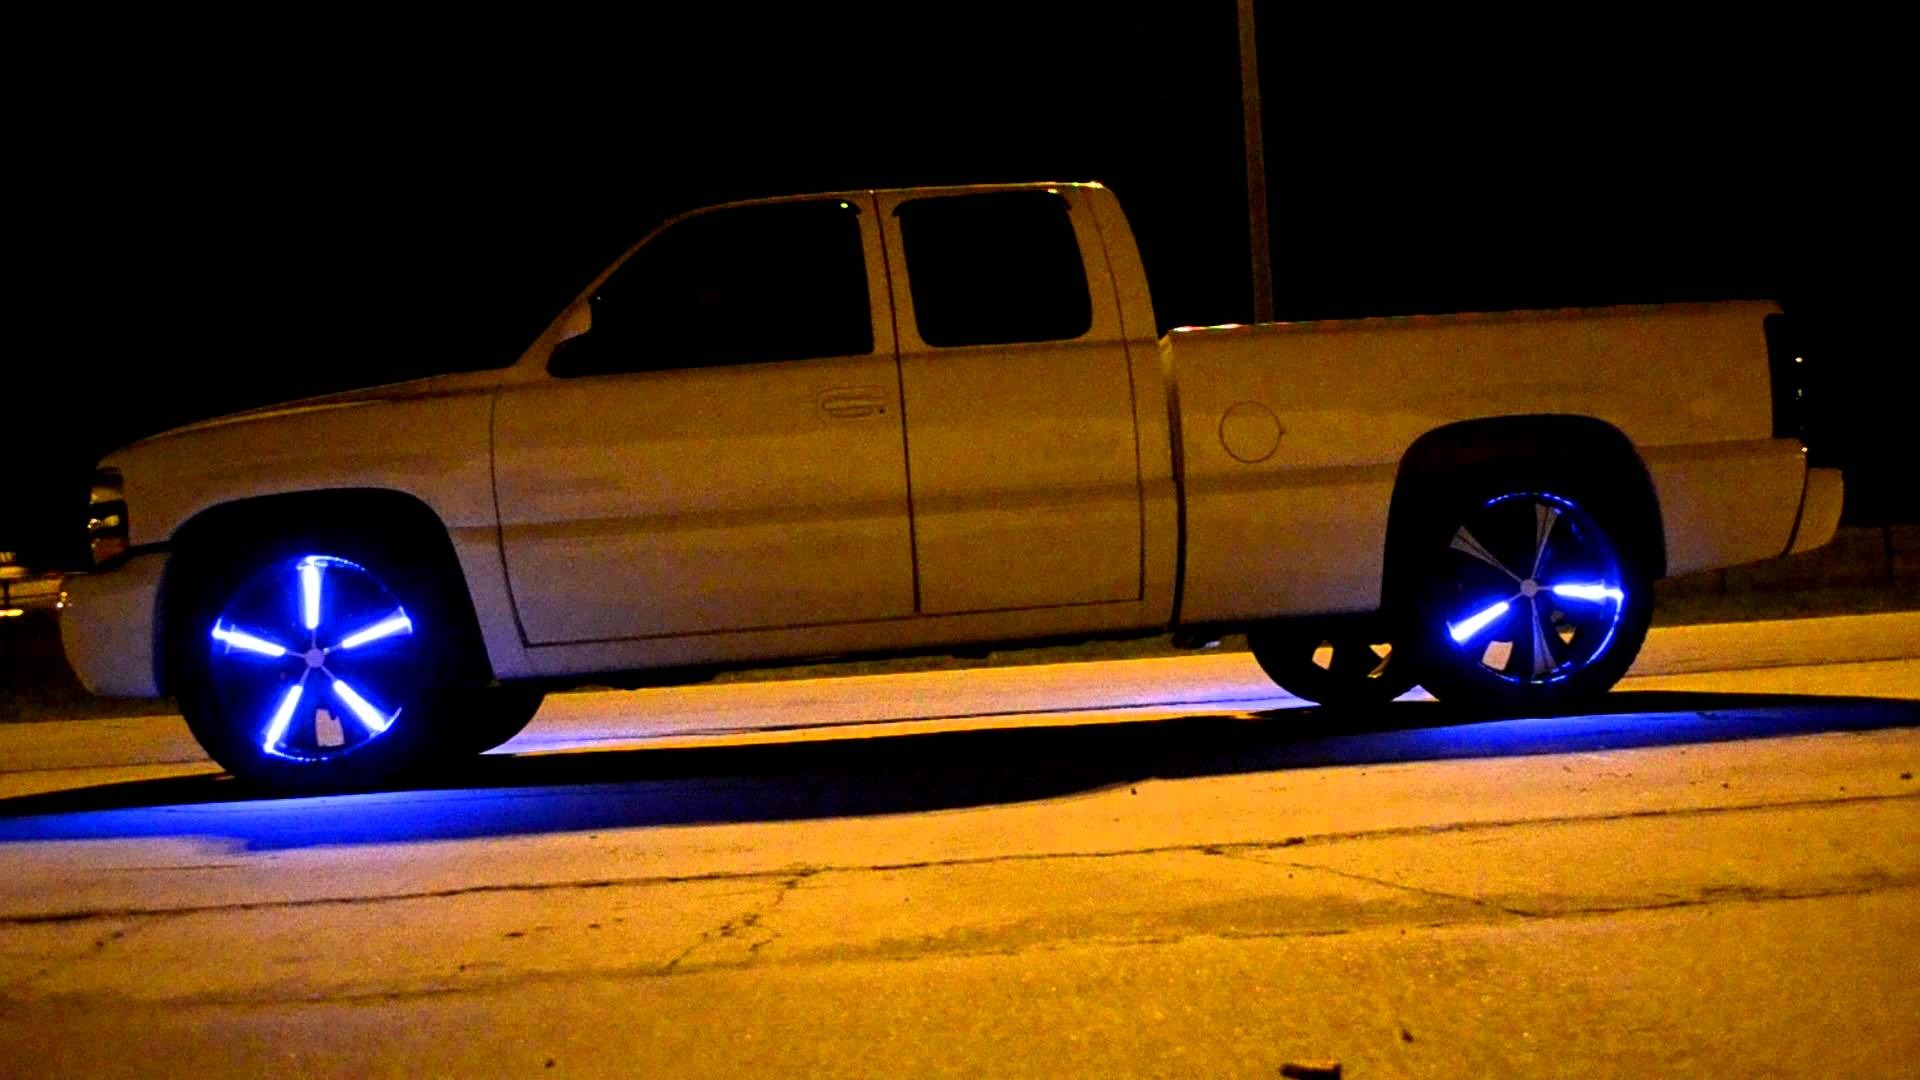 superb-design-of-the-blue-car-interior-accessories-lights-ideas-put-at-the-wheel-areas